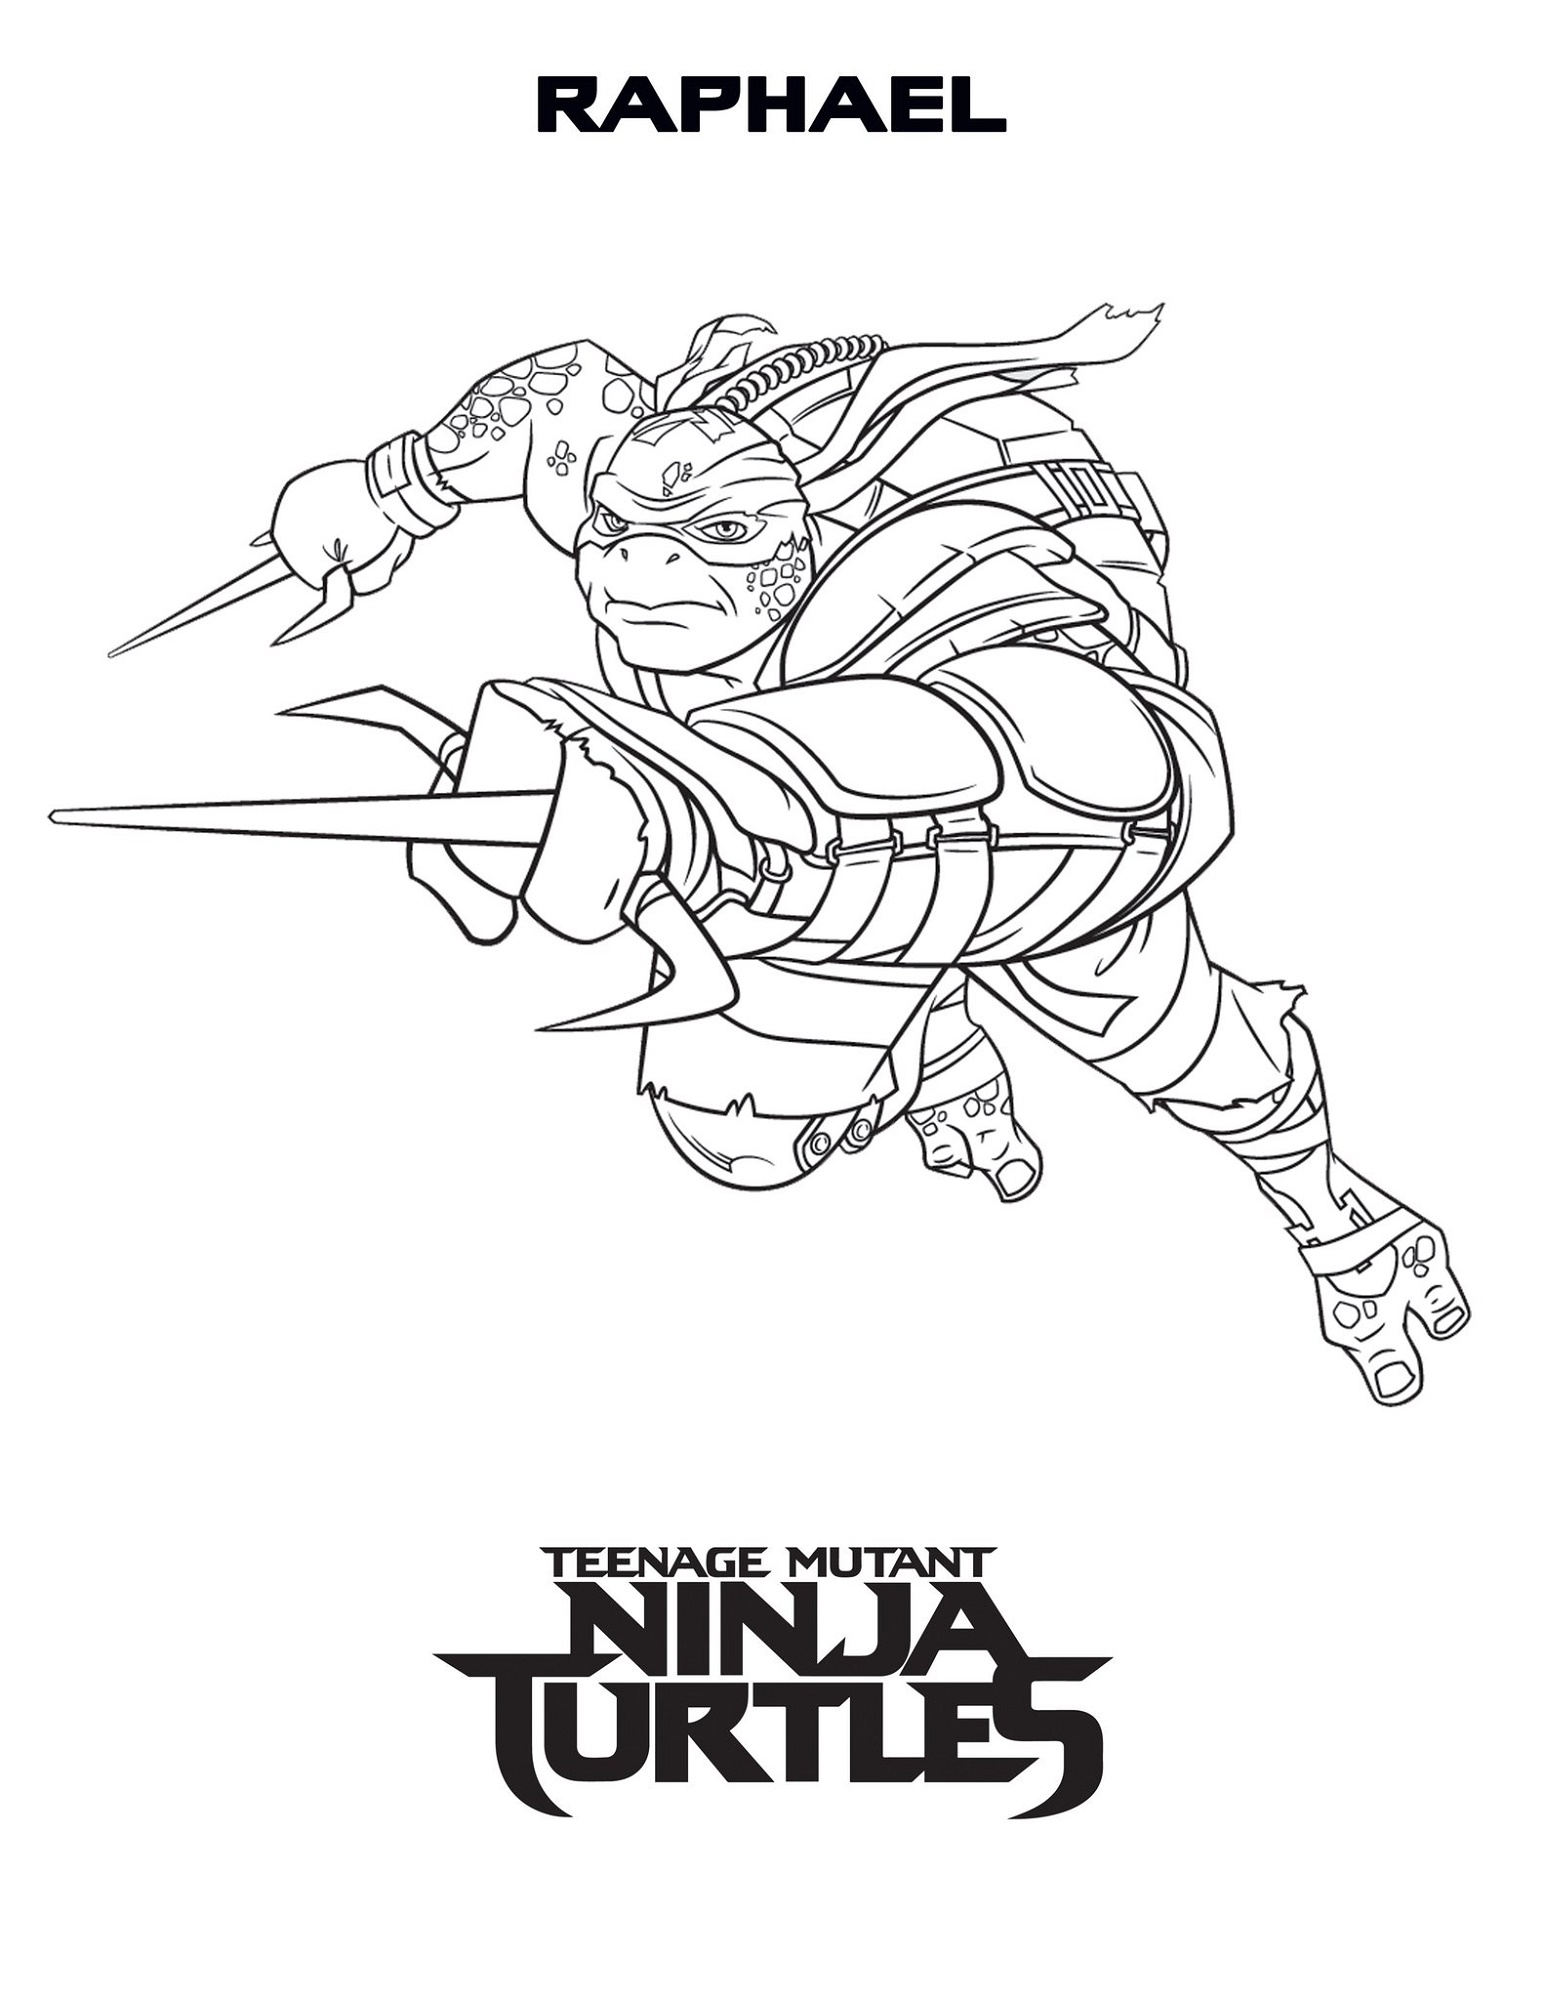 Teenage Mutant Ninja Turtles Coloring Pages To Print